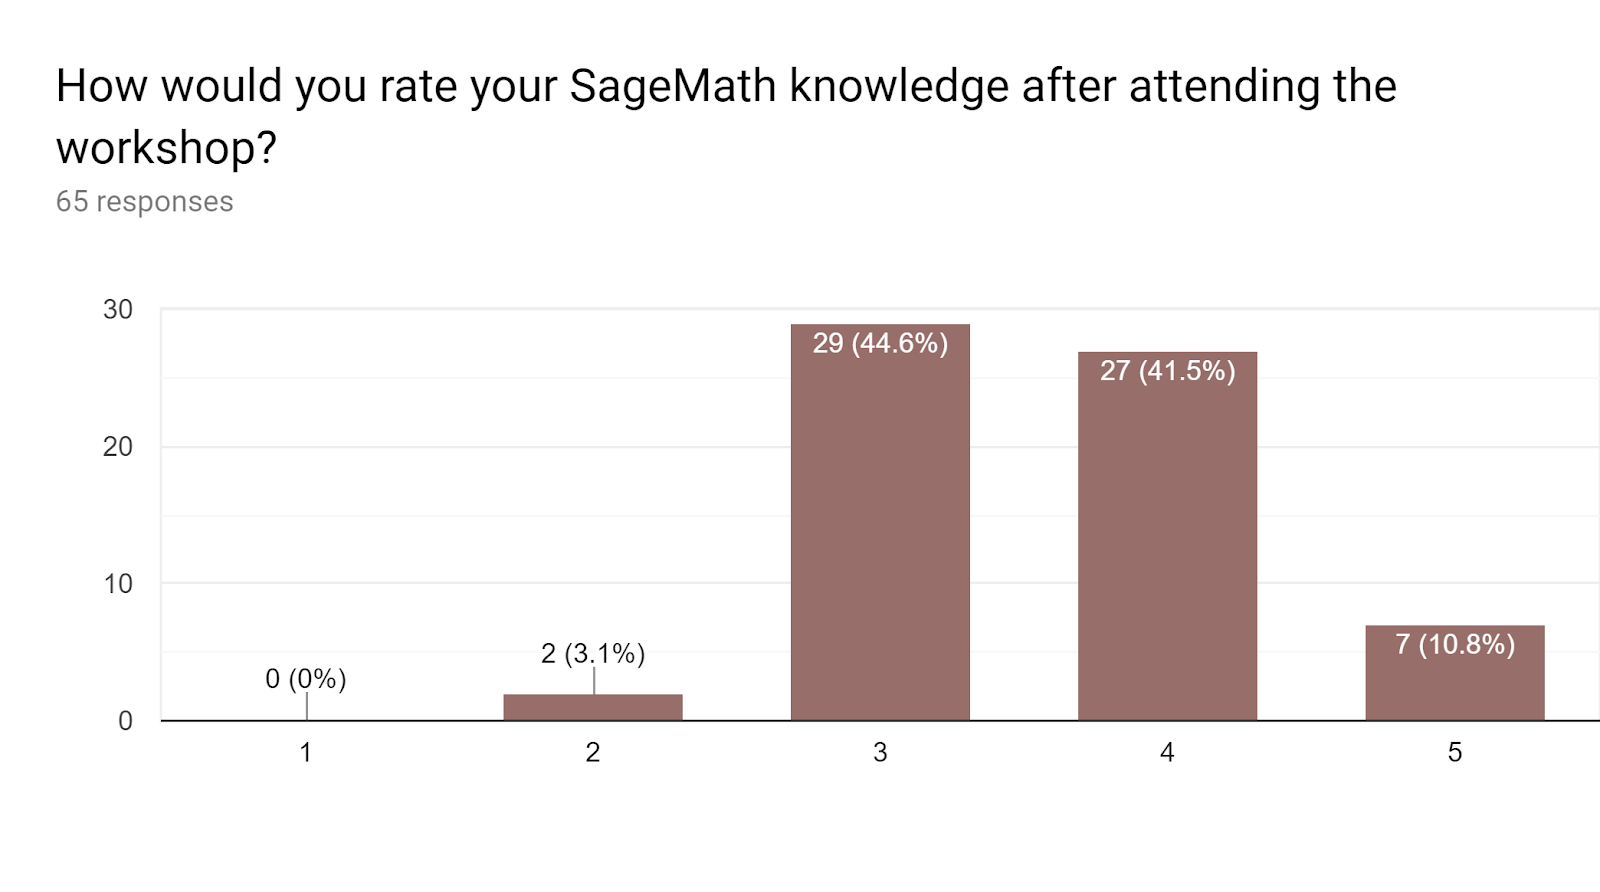 Sage knowledge following to the workshop: 1: 0%; 2: 3.1%; 3: 44.6%; 4: 41.5%; 5: 10.8%